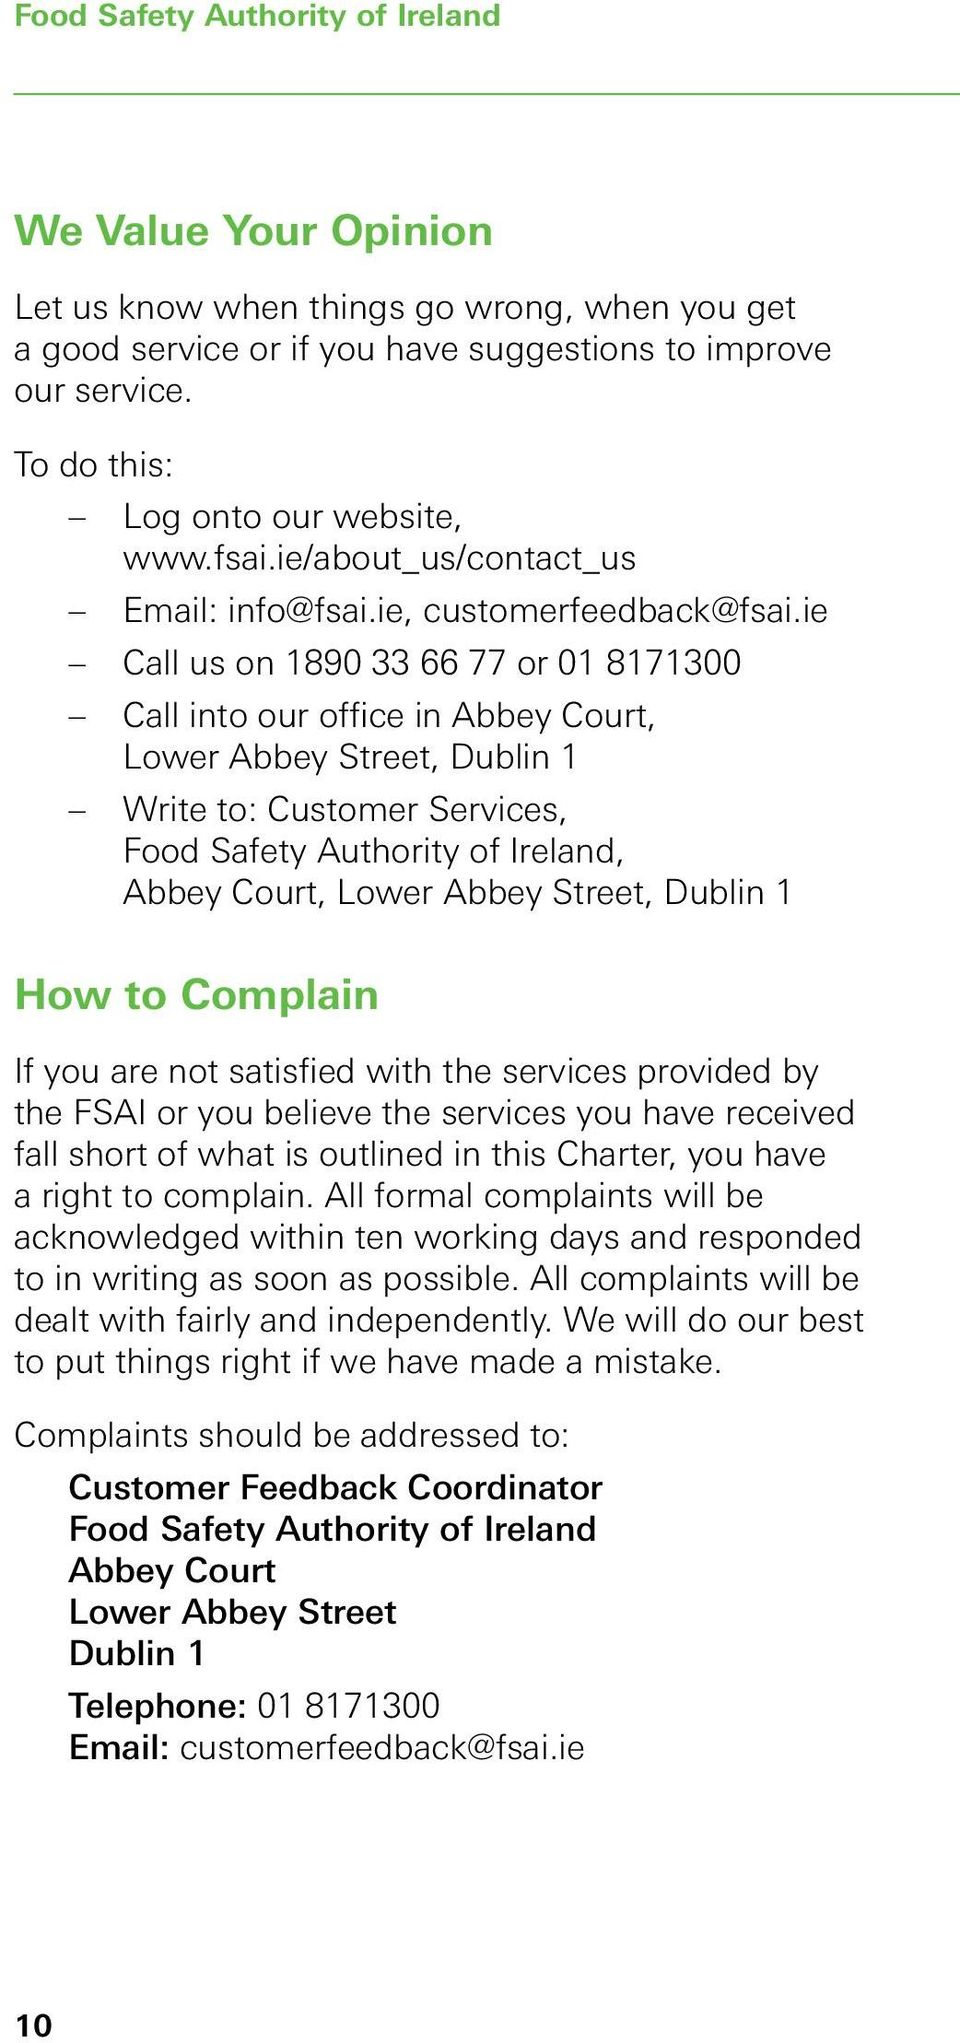 ie Call us on 1890 33 66 77 or 01 8171300 Call into our office in Abbey Court, Lower Abbey Street, Dublin 1 Write to: Customer Services, Food Safety Authority of Ireland, Abbey Court, Lower Abbey